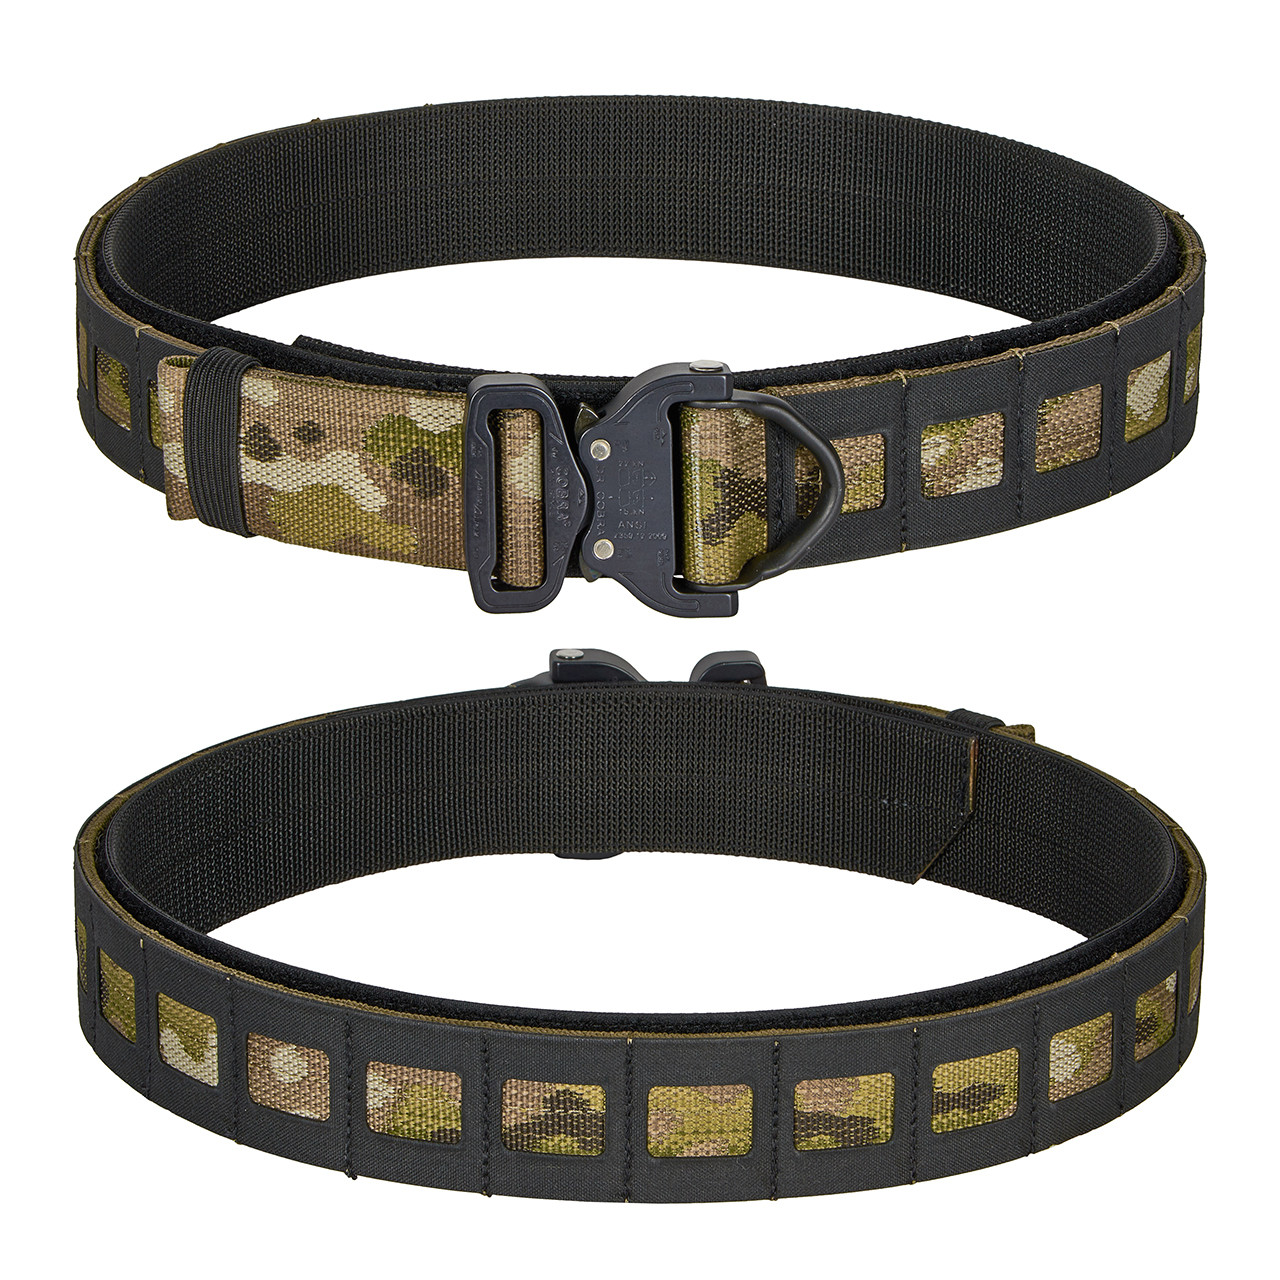 Multicam with Black Composite Material SMU Belt